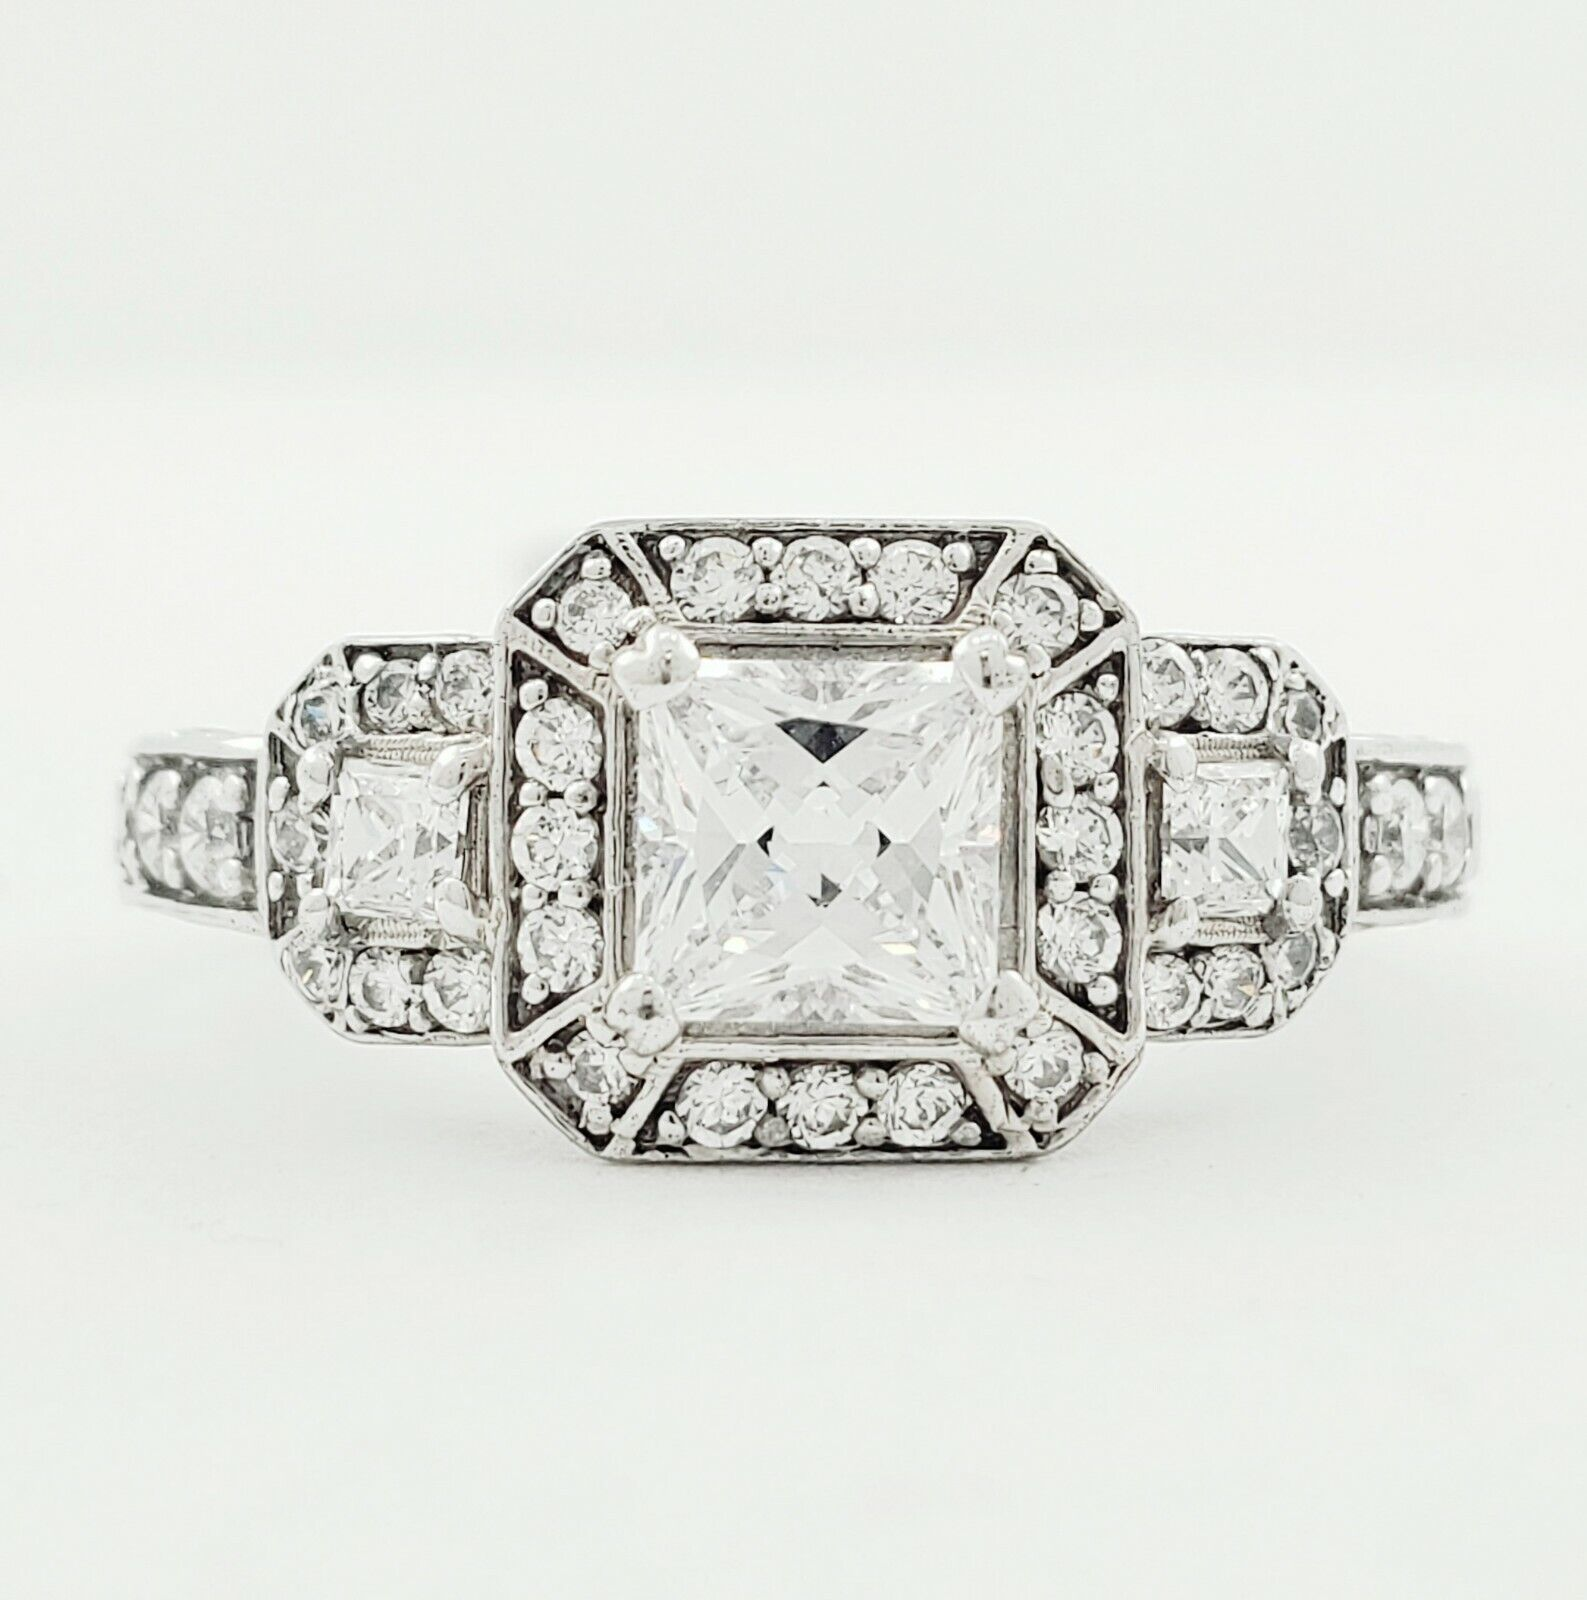 GIA Certified Diamond Engagement Ring 3.29 CT Cushion, Round & Princess Cut Plat